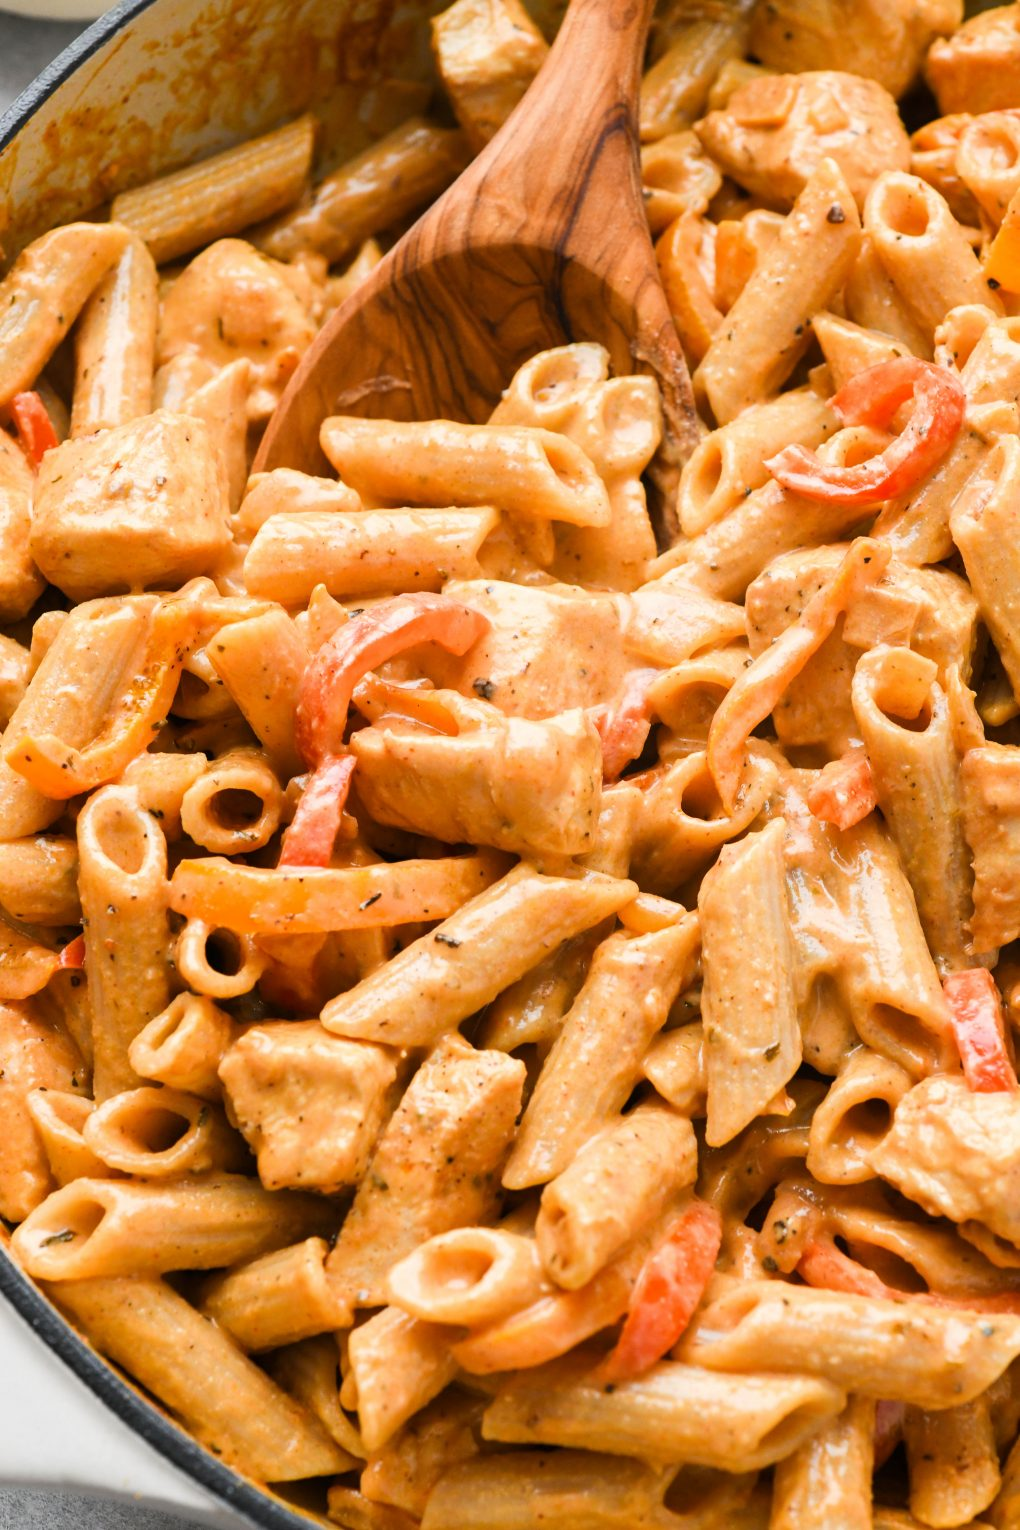 Close up shot of a spoon scooping creamy cajun chicken pasta out of a large ceramic skillet.